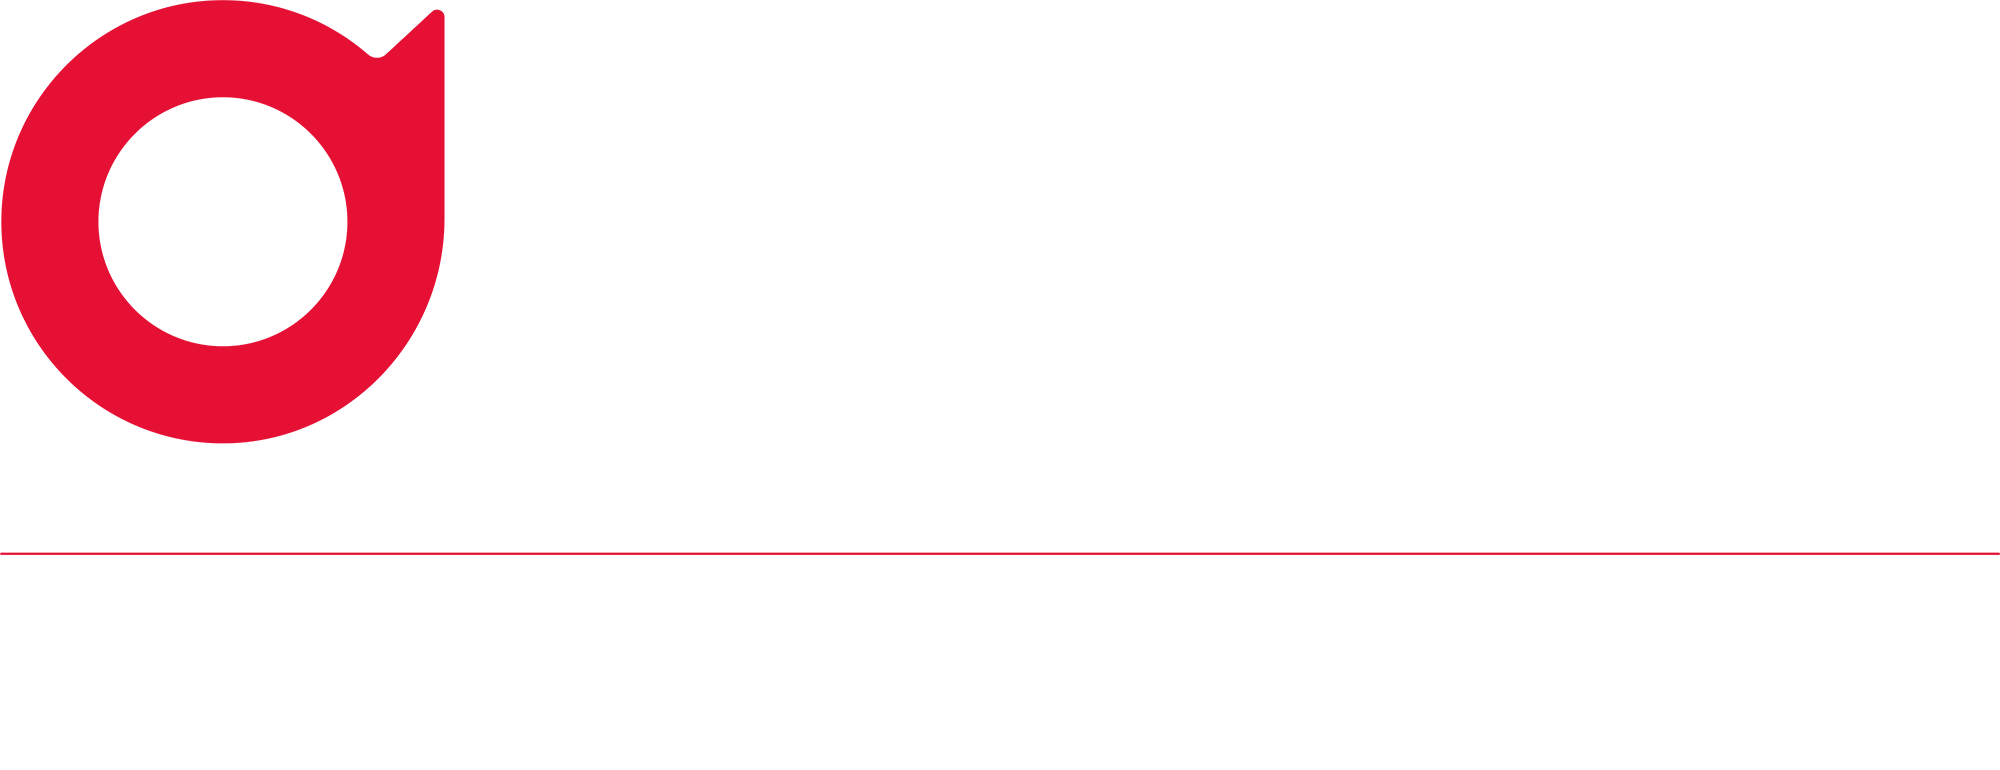 Digital Artisans